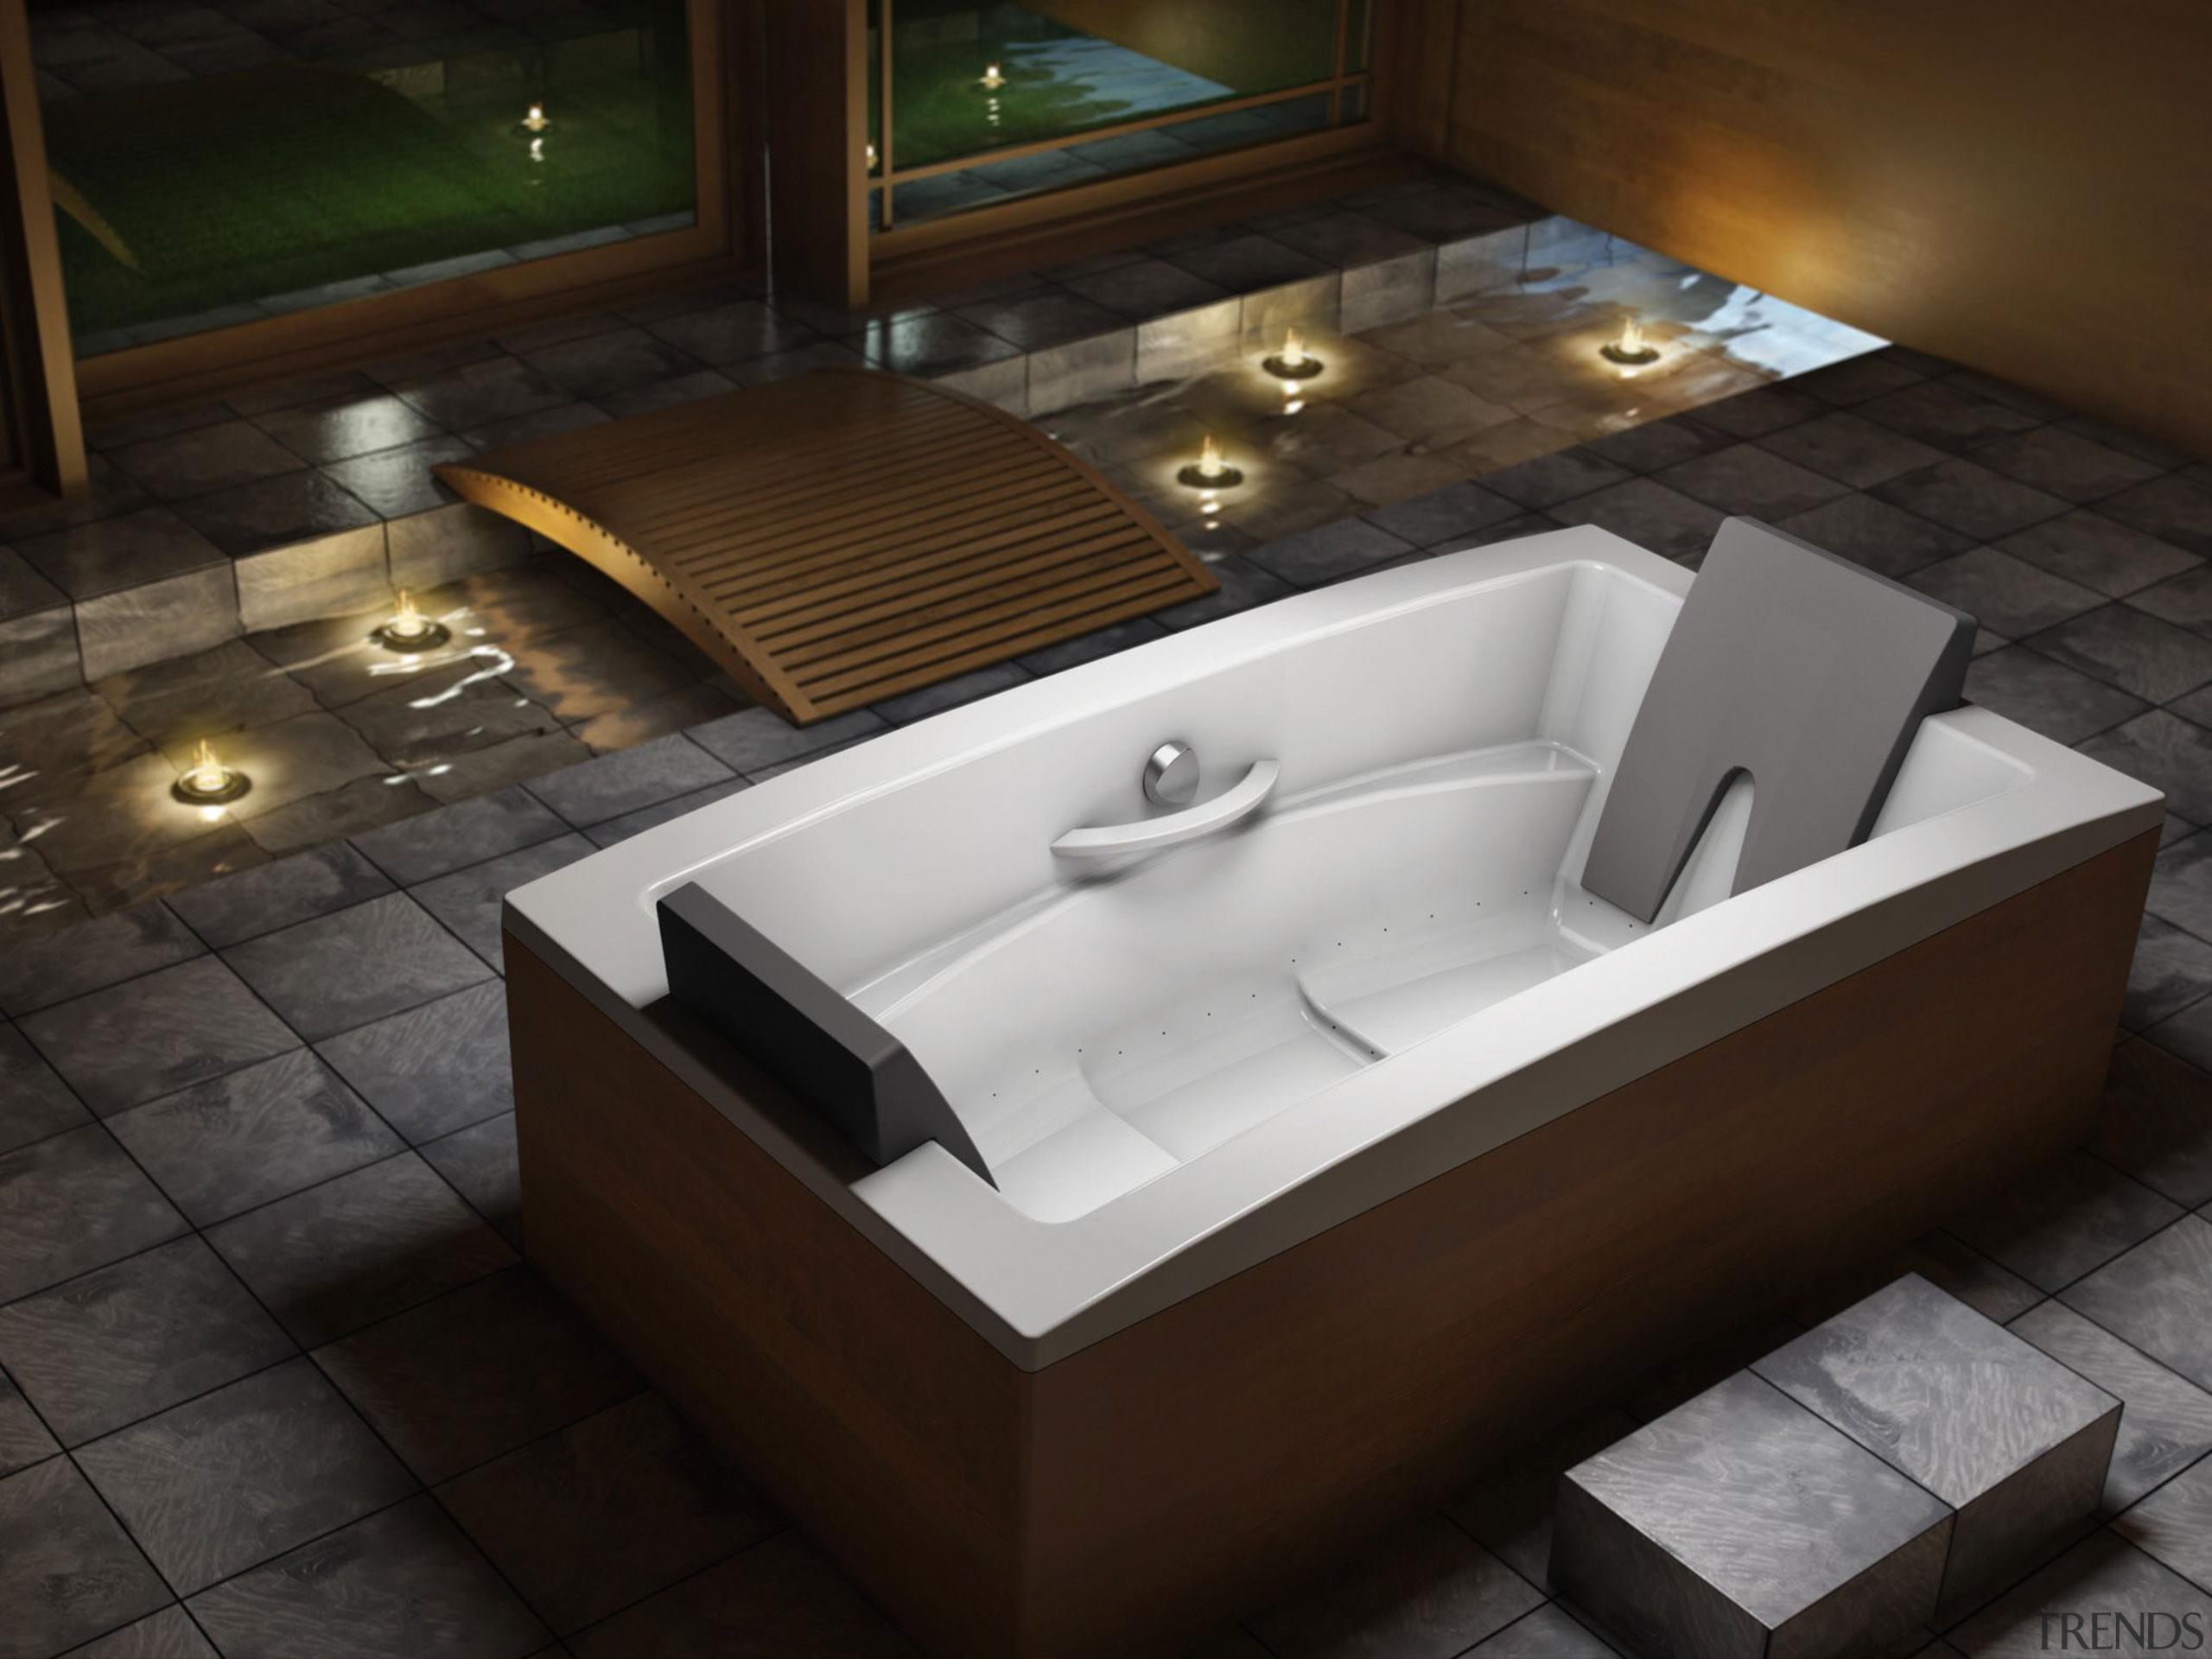 The Inua bath is the next generation in angle, bathtub, floor, plumbing fixture, product design, sink, black